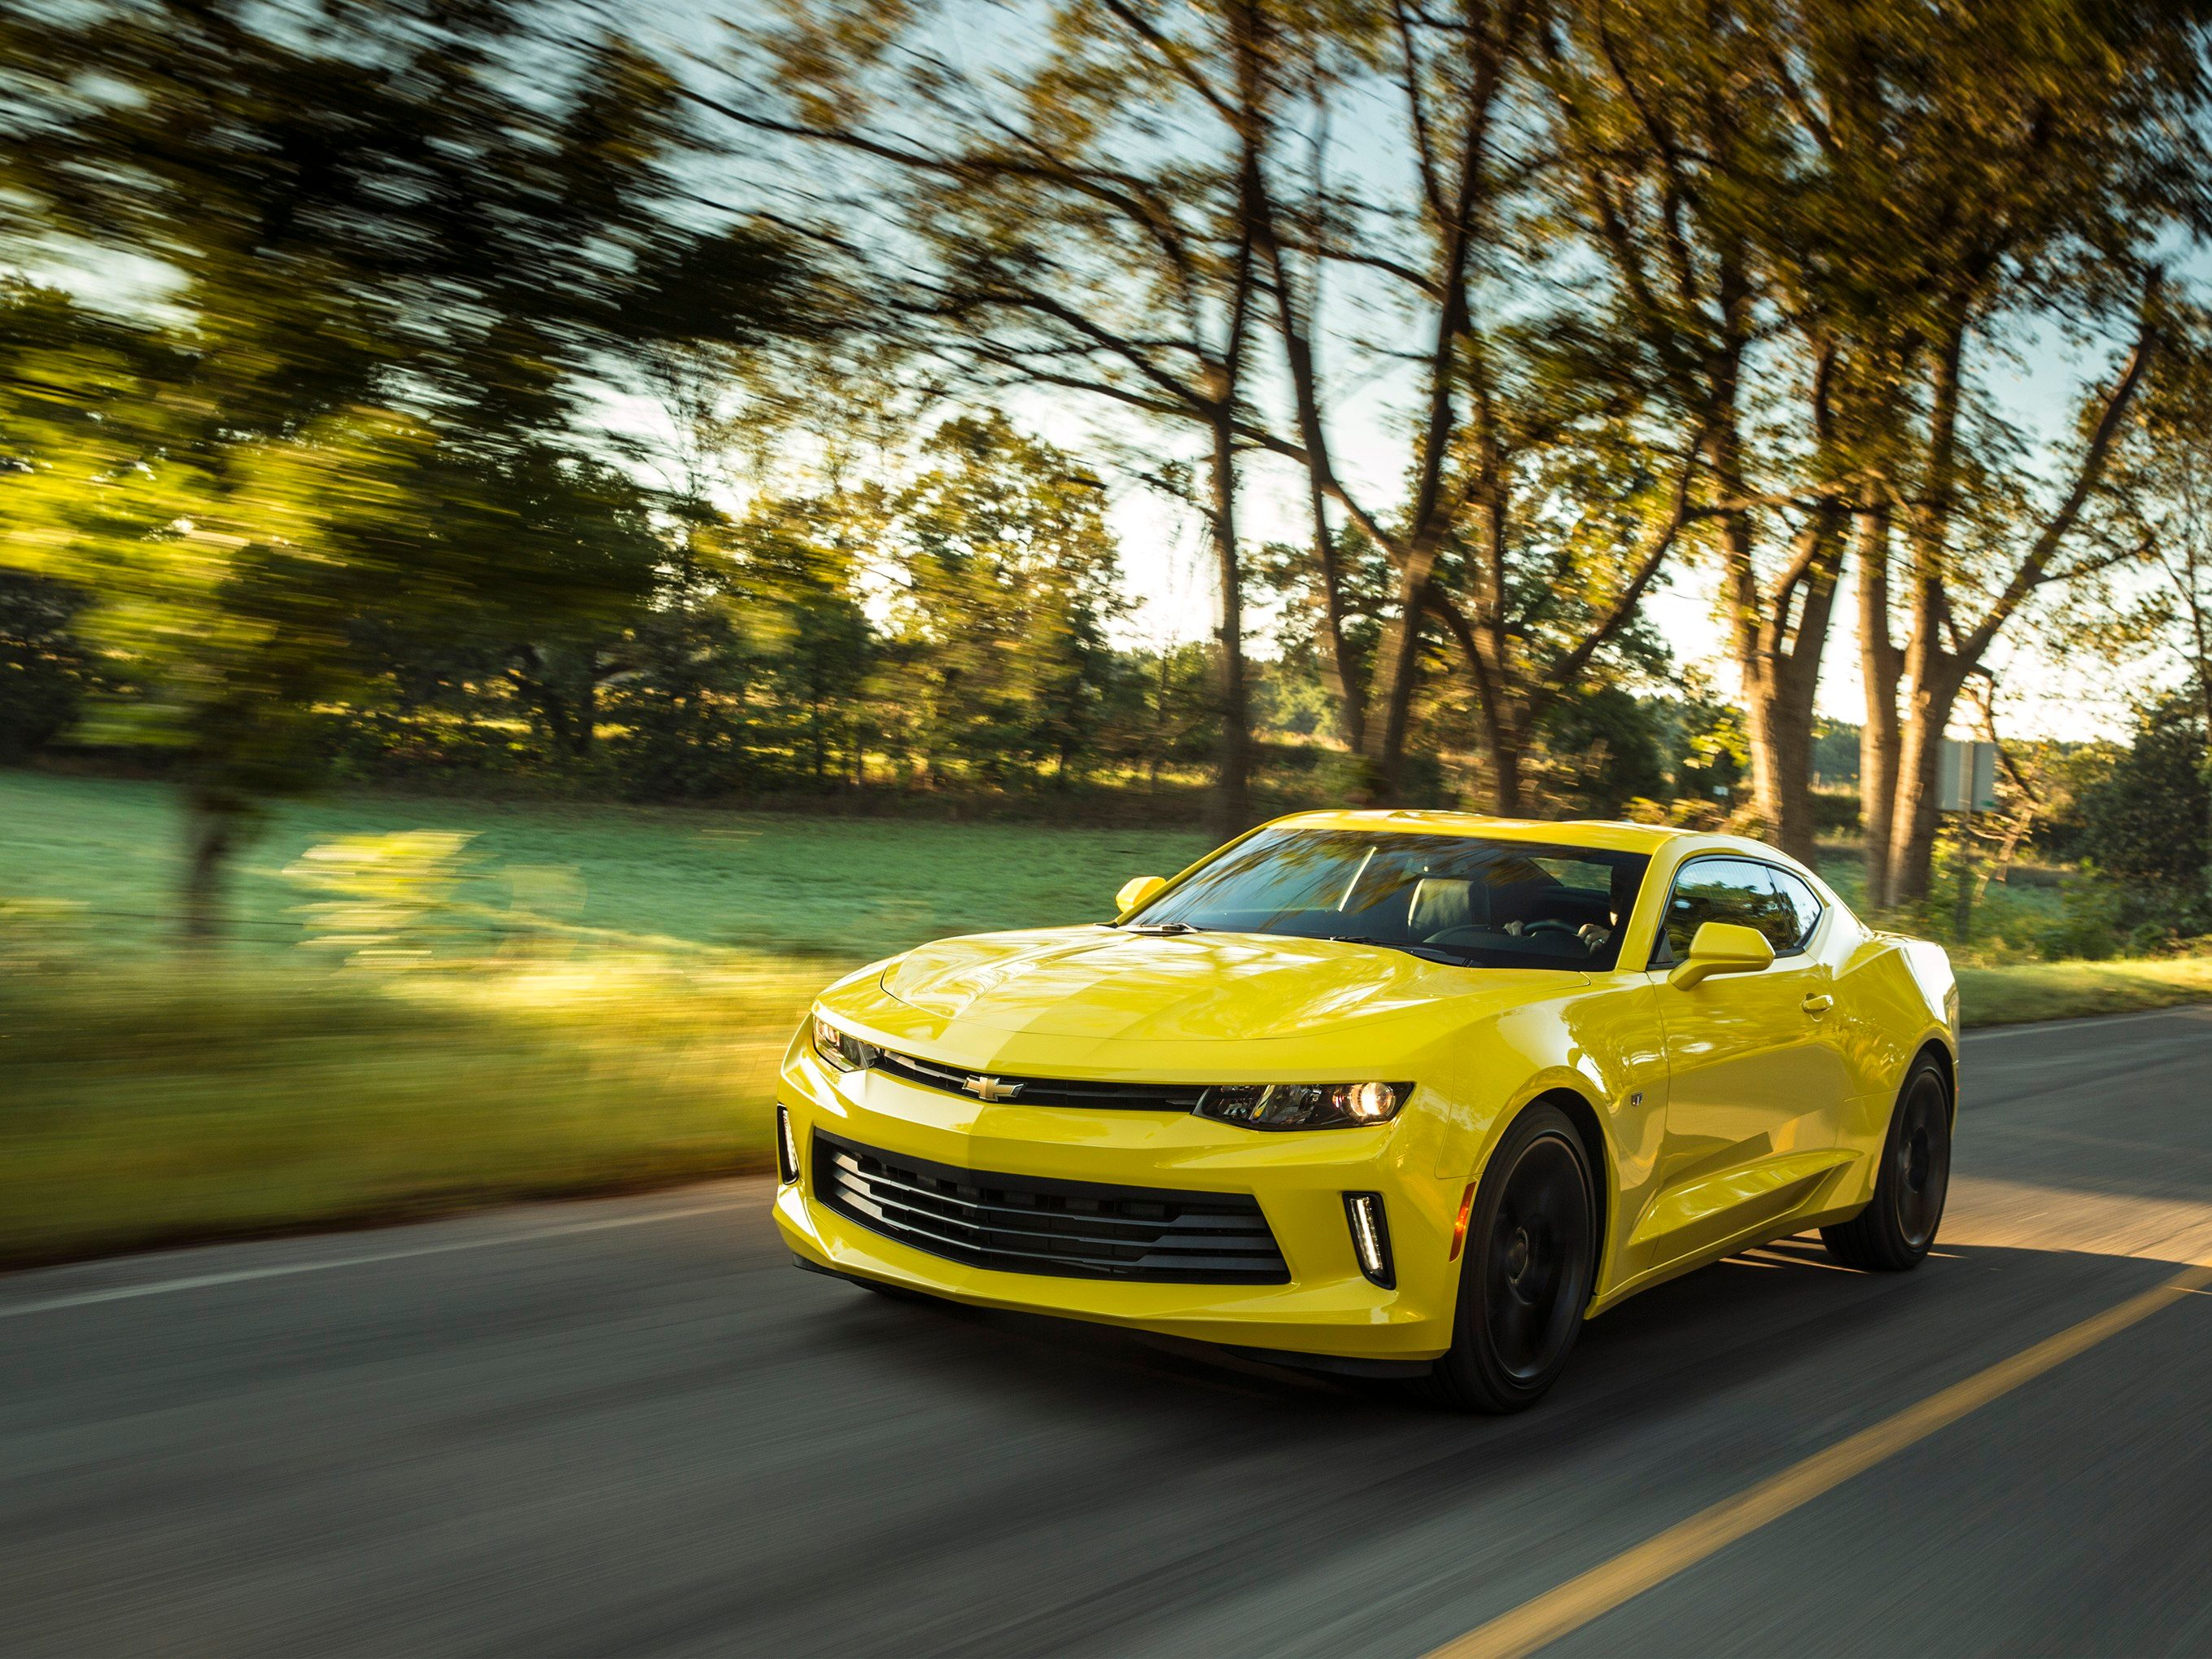 2. The 2016 Chevrolet Camaro has shed some weight.